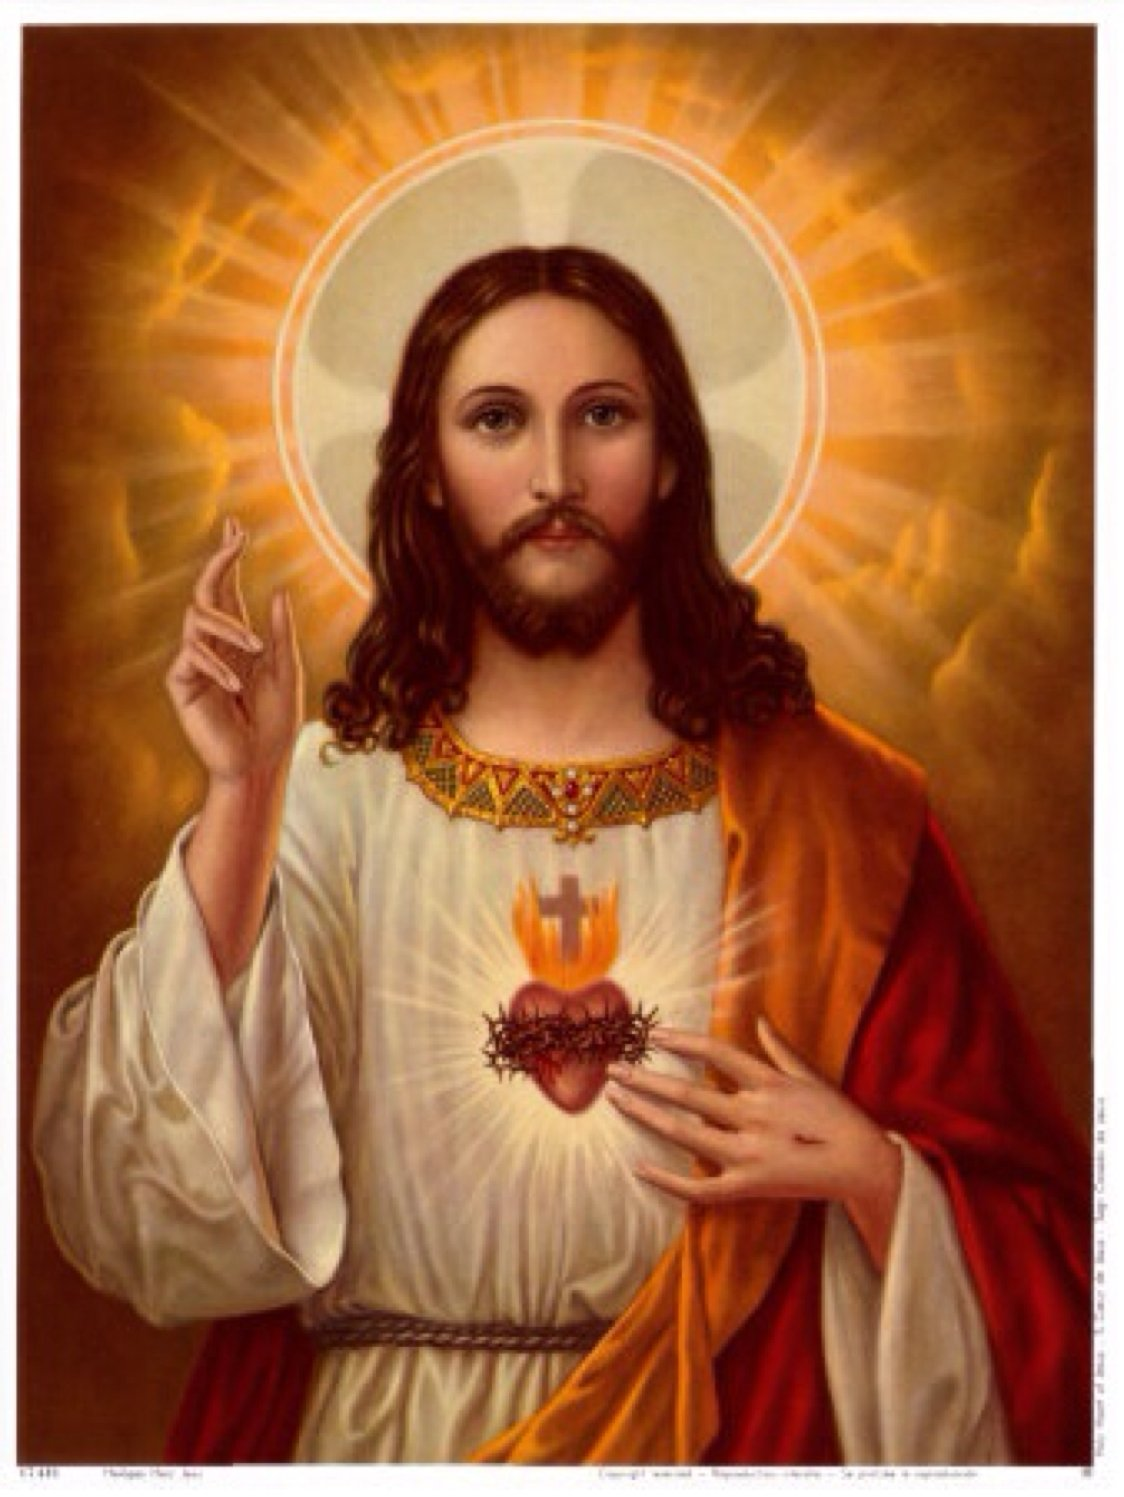 Jesus Christ with Halo Photo Art Christian Religious Photos Artwork 8x10 Perfect Posters and Pics